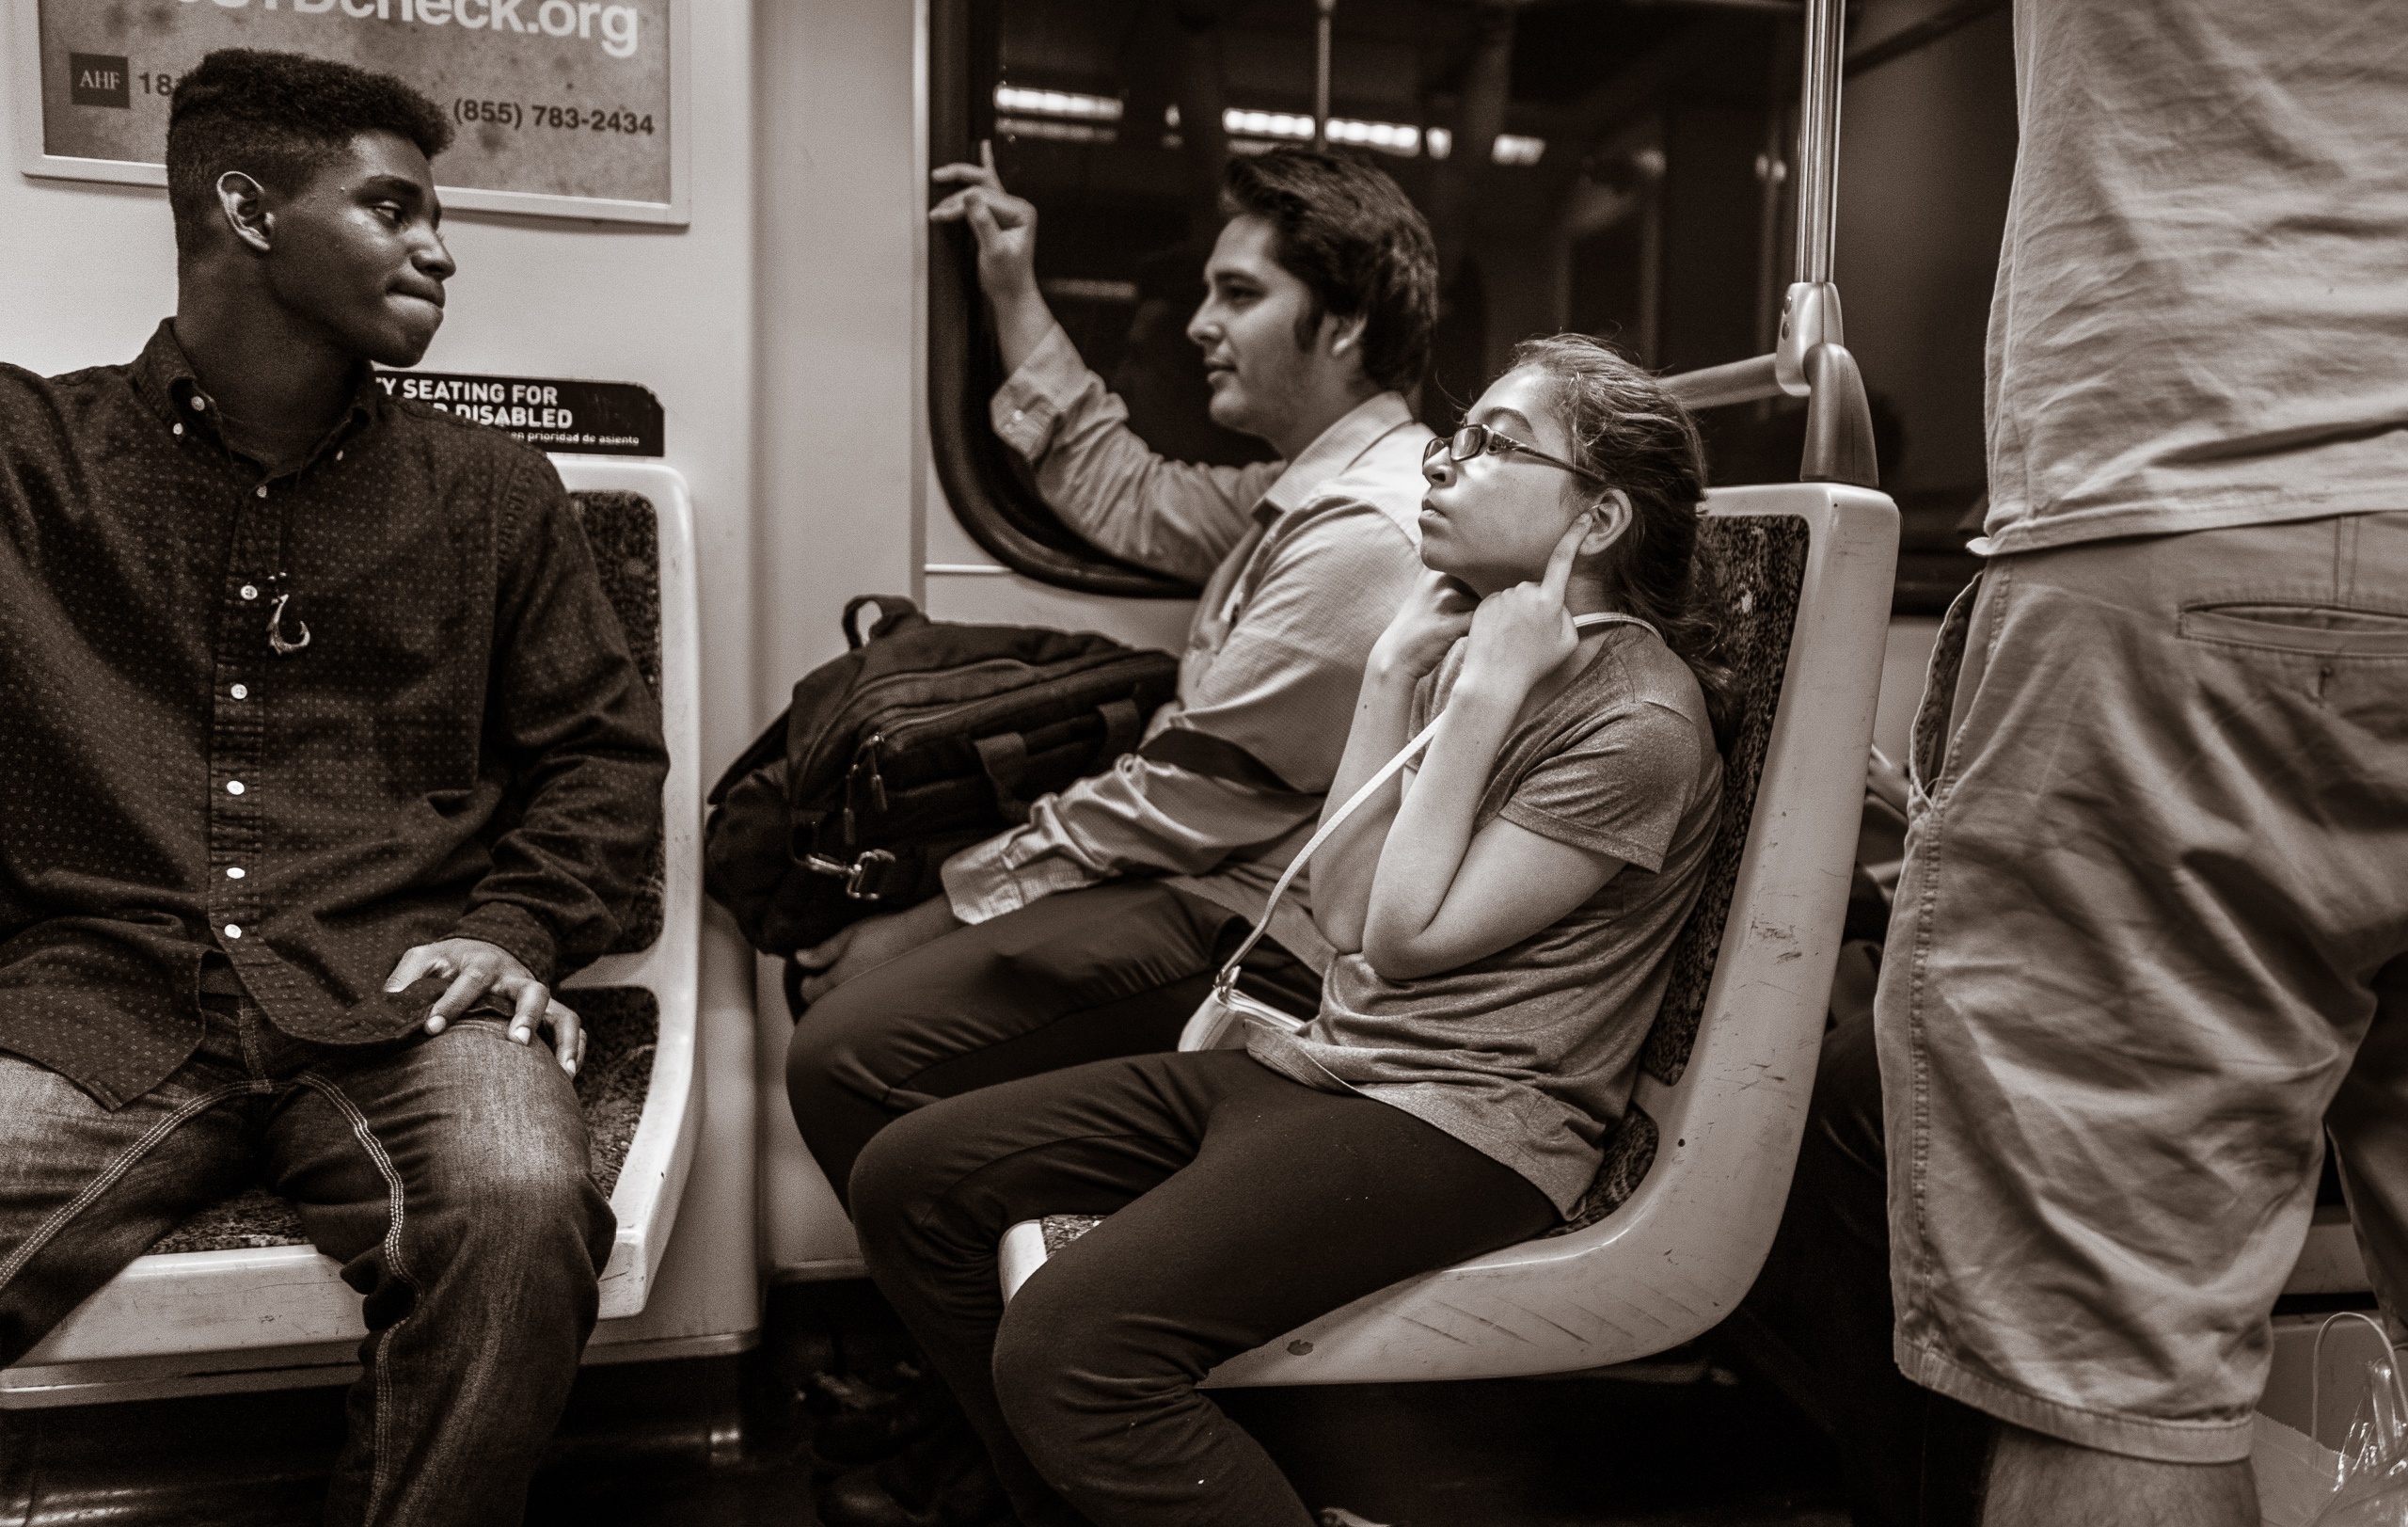 a young girl on a Metro Red Line train car plugs her ears with her fingers